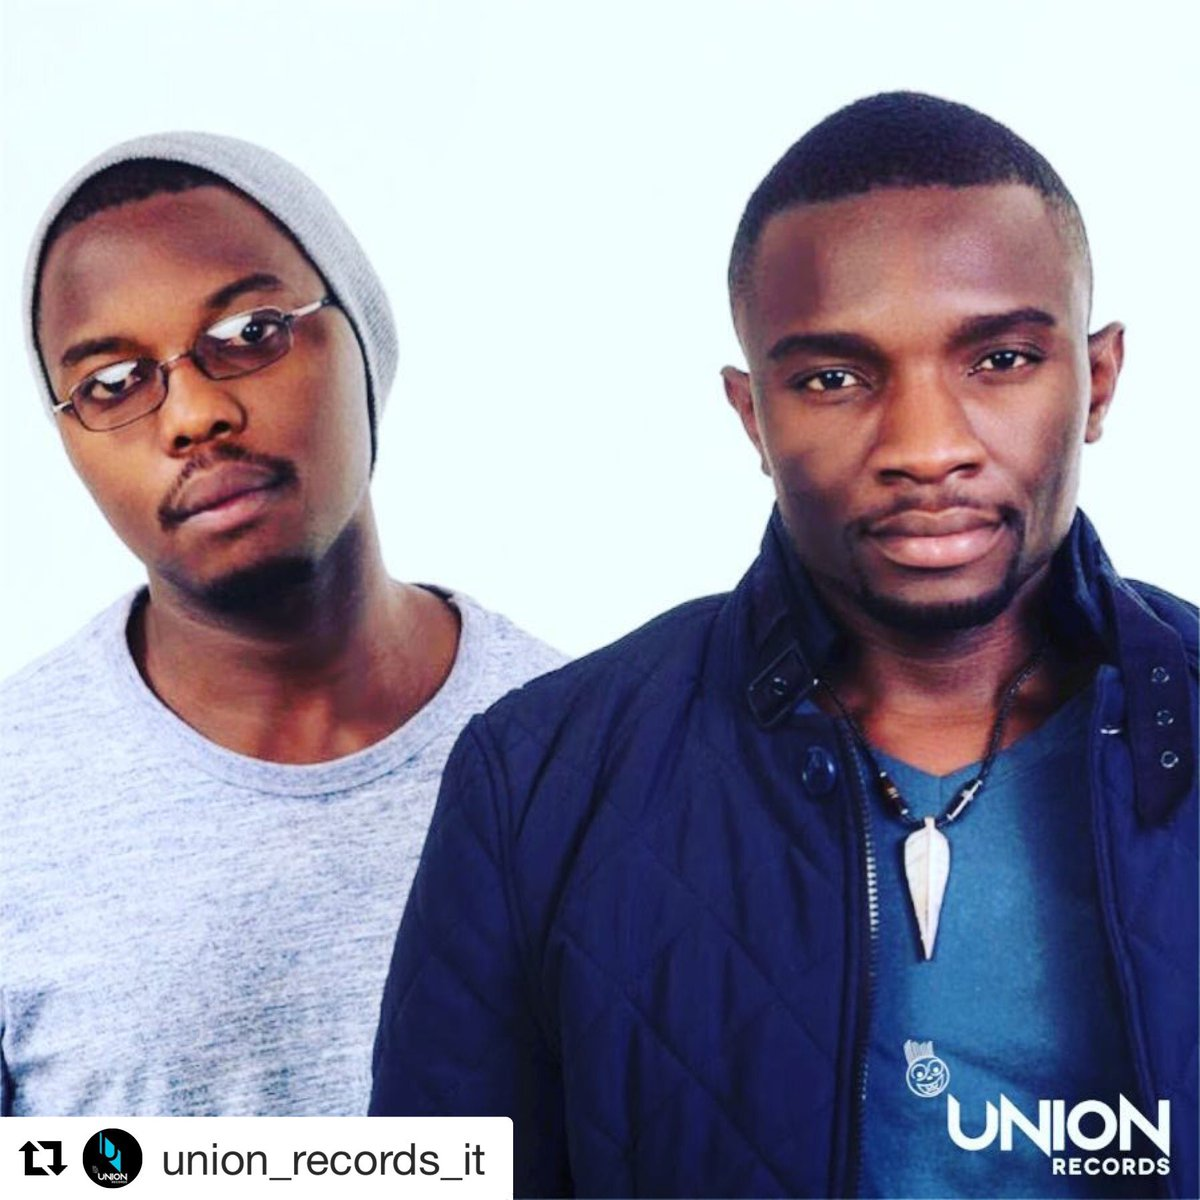 To  Working On A Dream Till It Becomes Reality @kreativenativez  #tothe @RecordsUnion  #family #believeinyourself  #UnionRecords #unionrecordsit #PutInTheWork #releases #housemusic #djlife #afrohouse #afrotech #deephouse #summer2018 #music #store<br>http://pic.twitter.com/xvxlrkwdzK